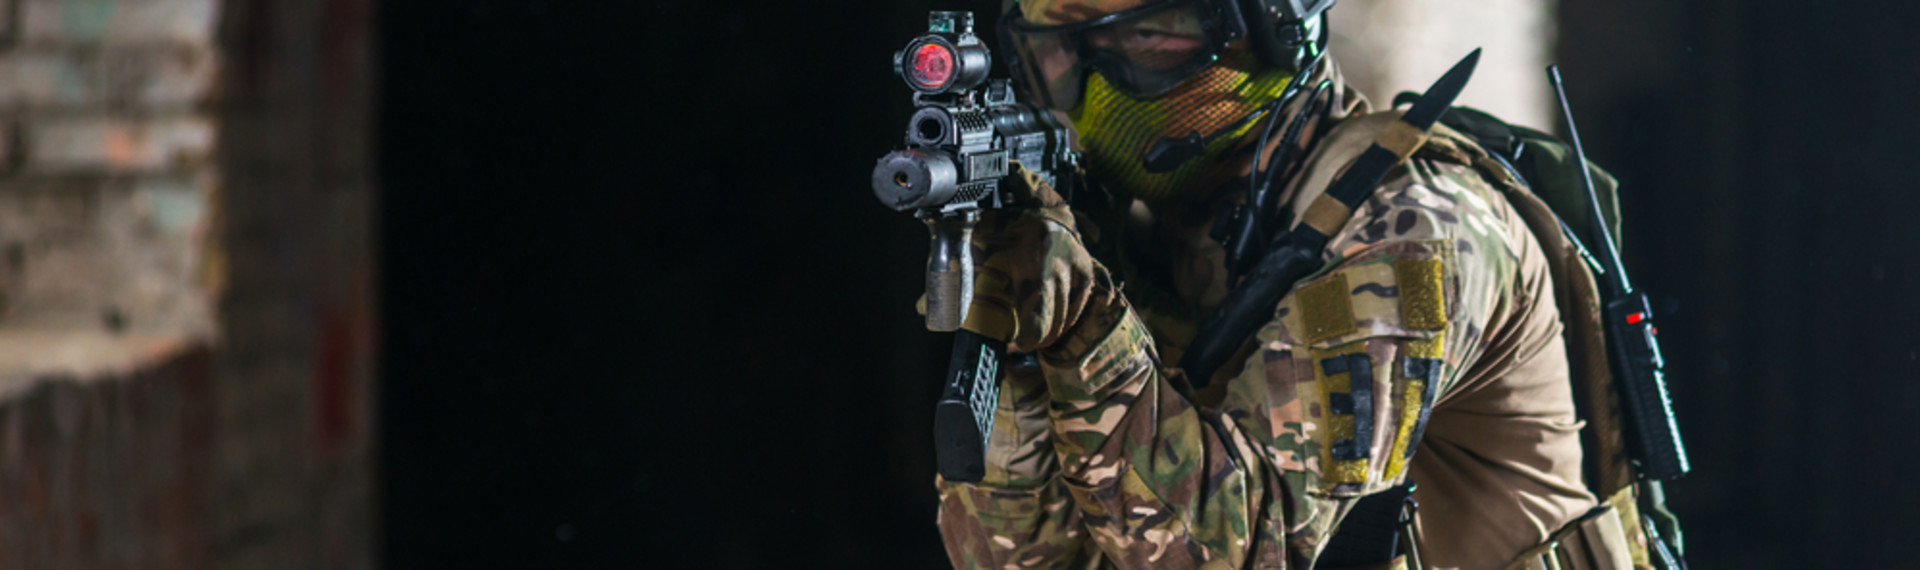 Budapest Airsoft image